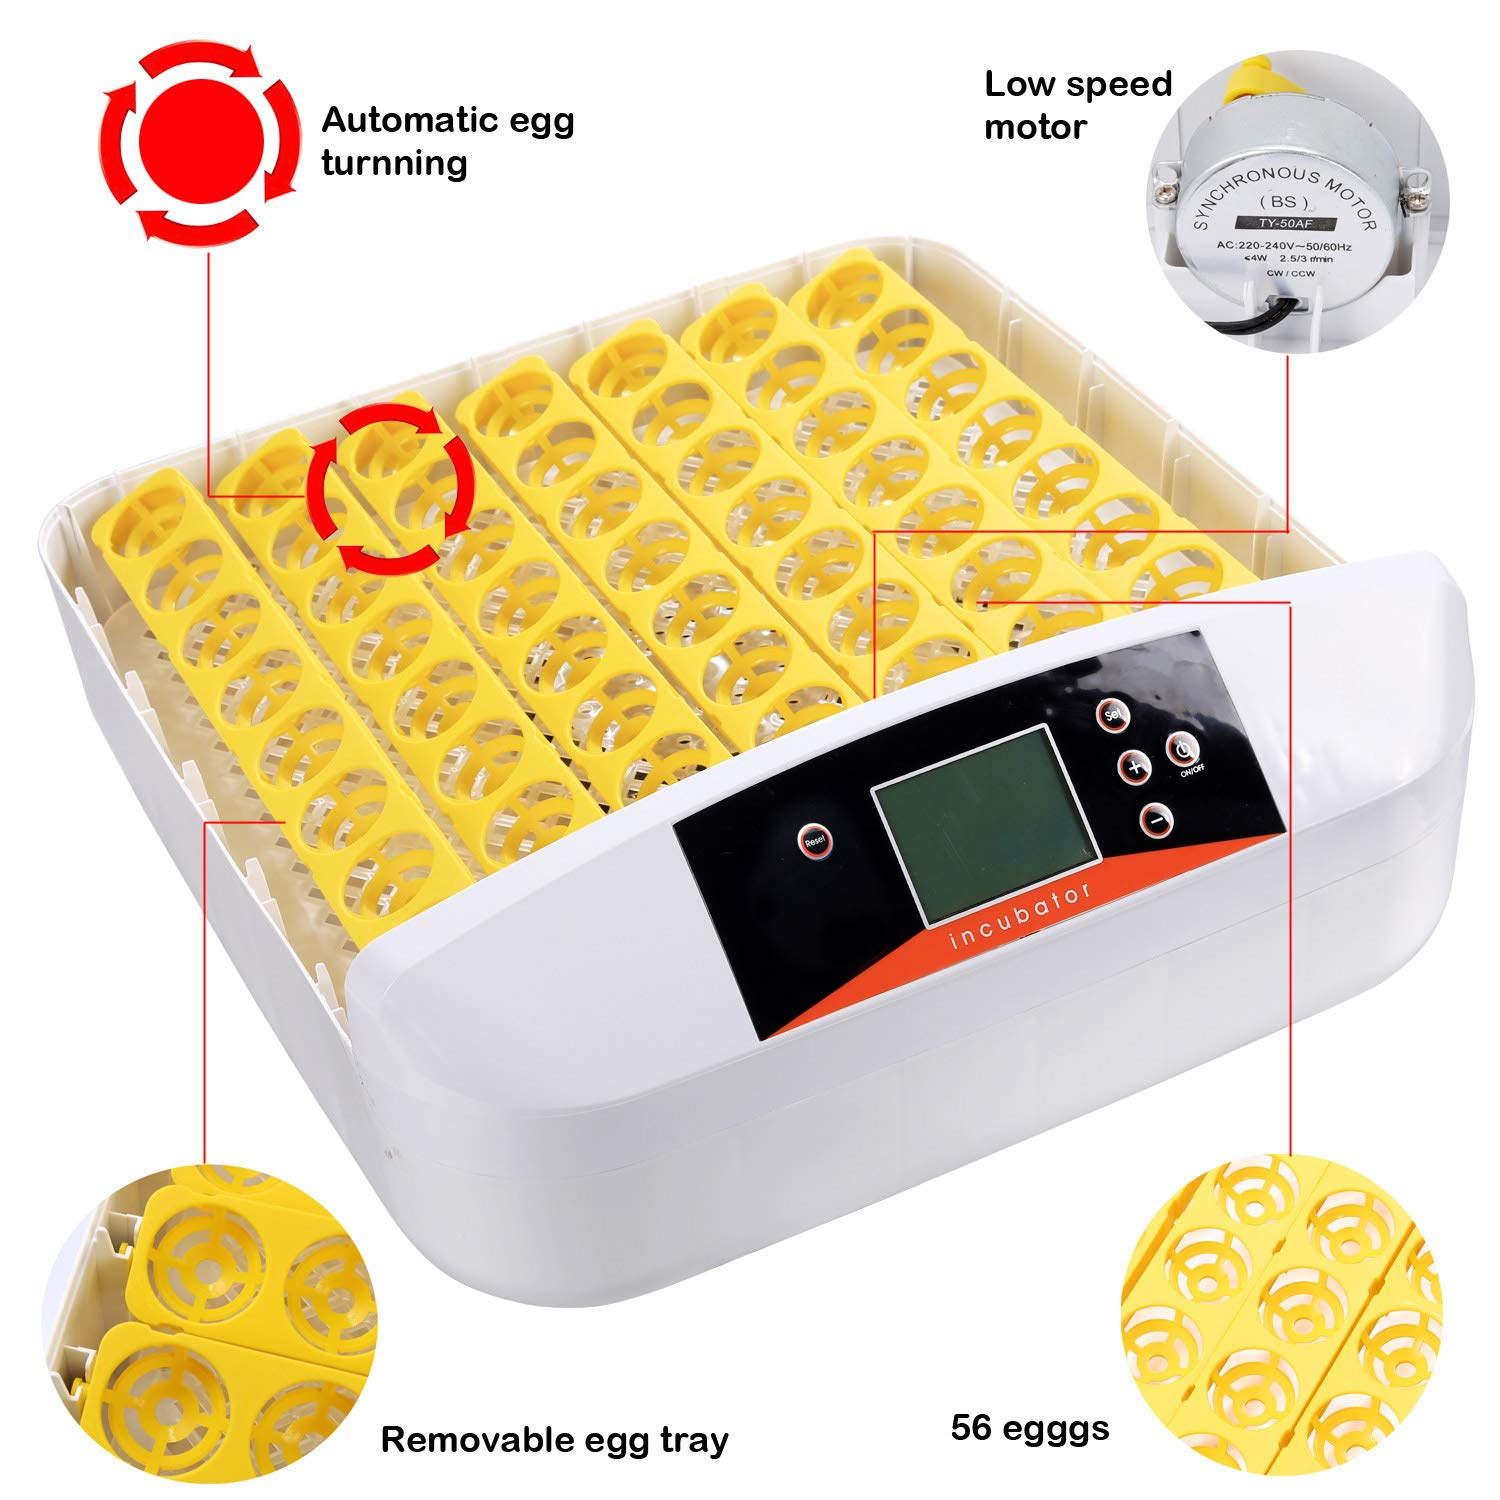 Currens 56 Egg Incubator with Eggs Turner,Digital Automatic Incubators for Hatching Chicken Duck Quail Birds Eggs Poultry Hatcher,Encubadora De Huevos by Currens (Image #10)